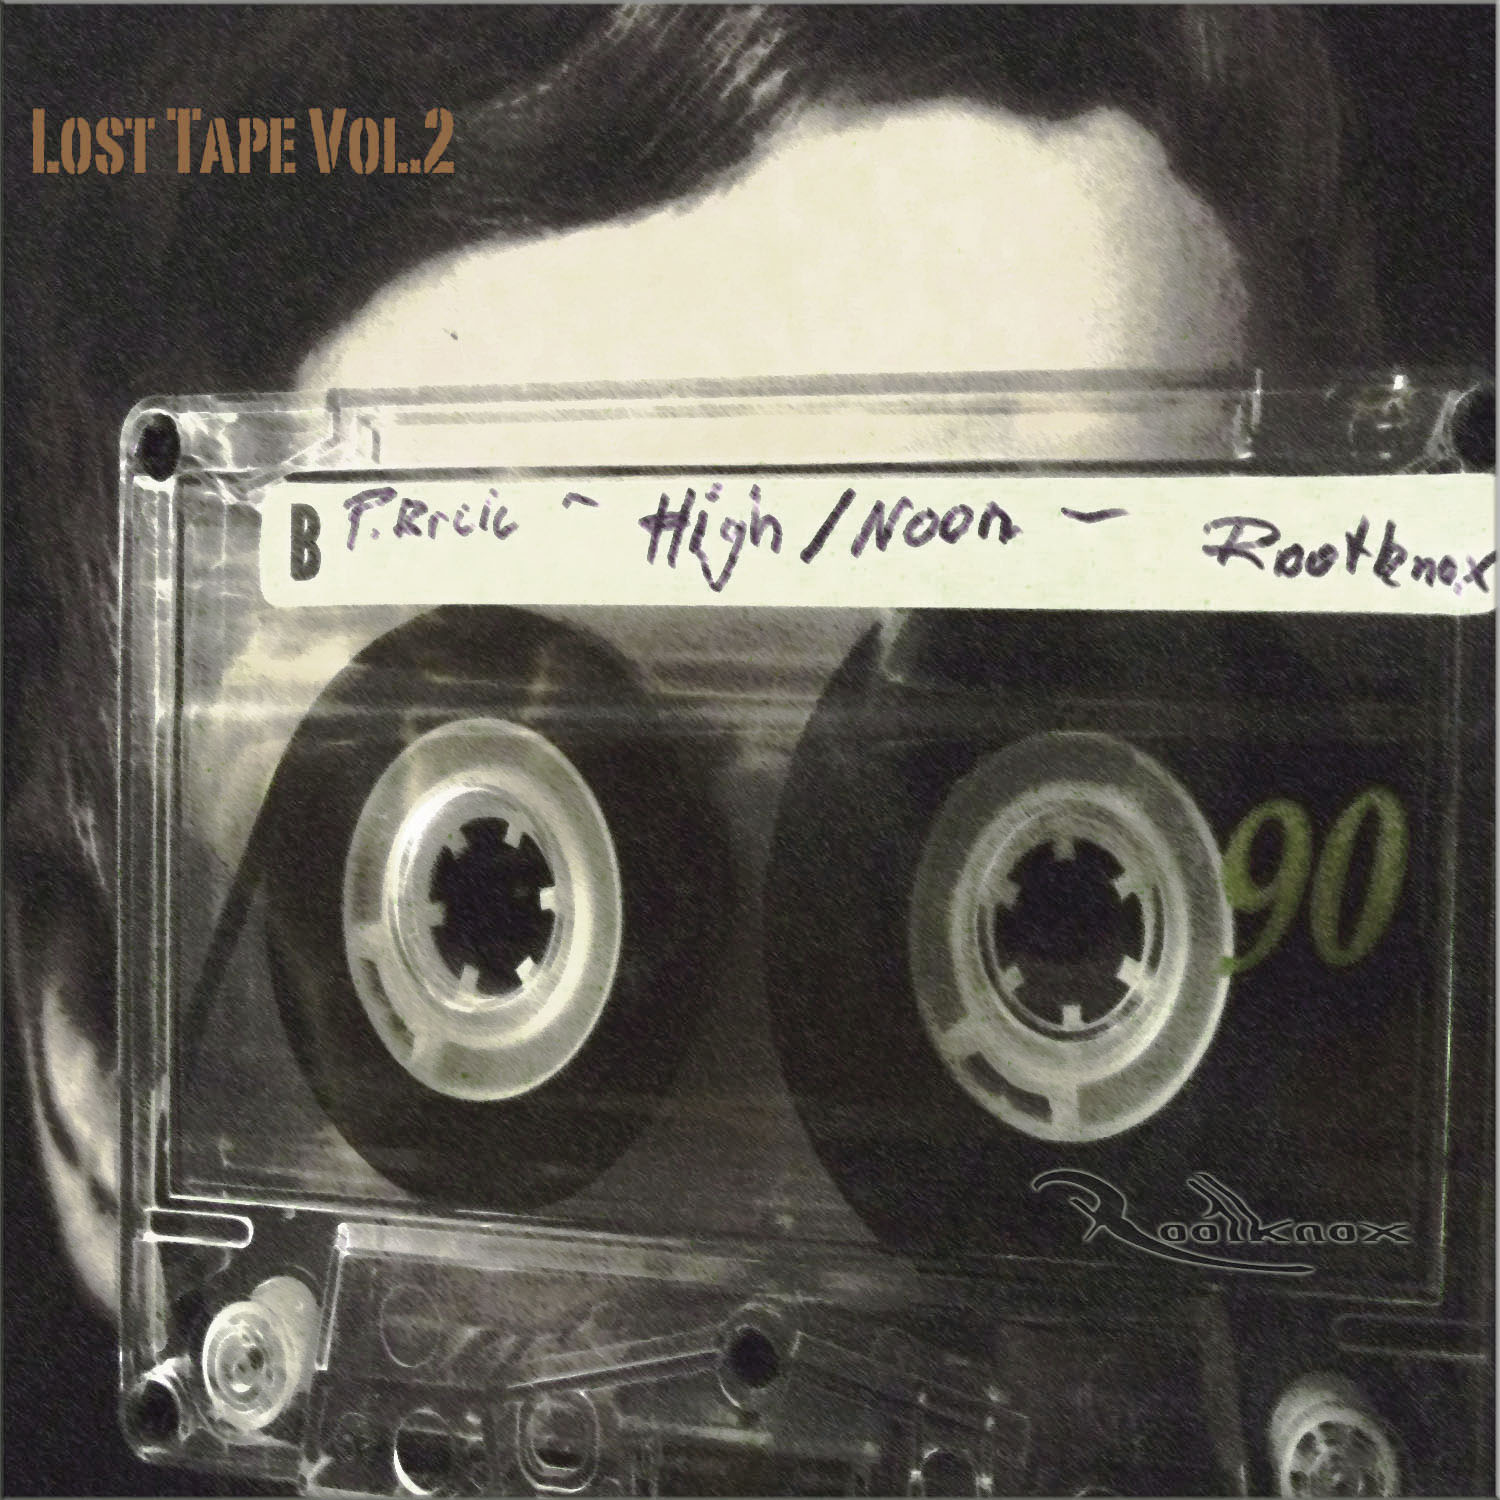 lost_tape_2_cover2.jpg